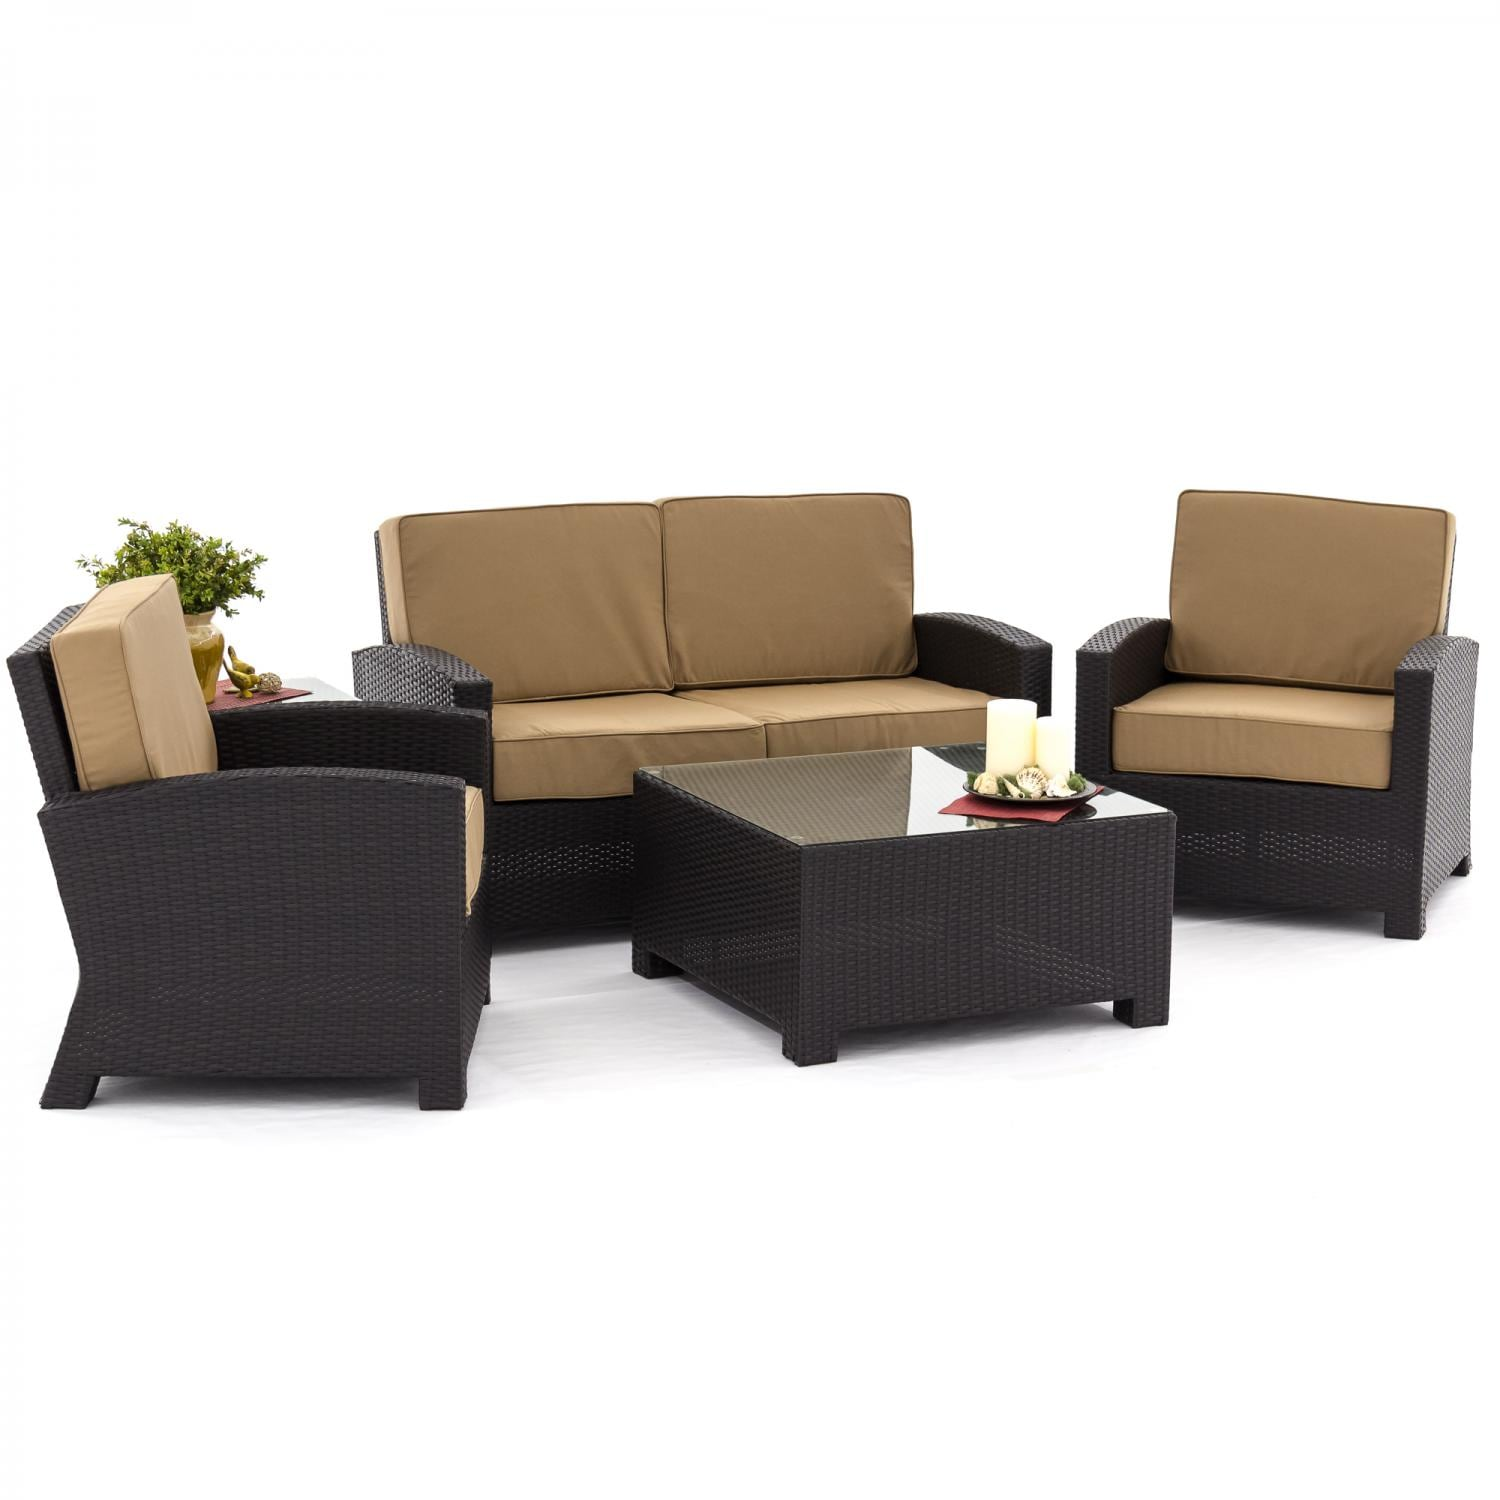 Eden Isle 5 Piece Resin Wicker Patio Deep Seating Set With Loveseat By Lakeview Outdoor Designs